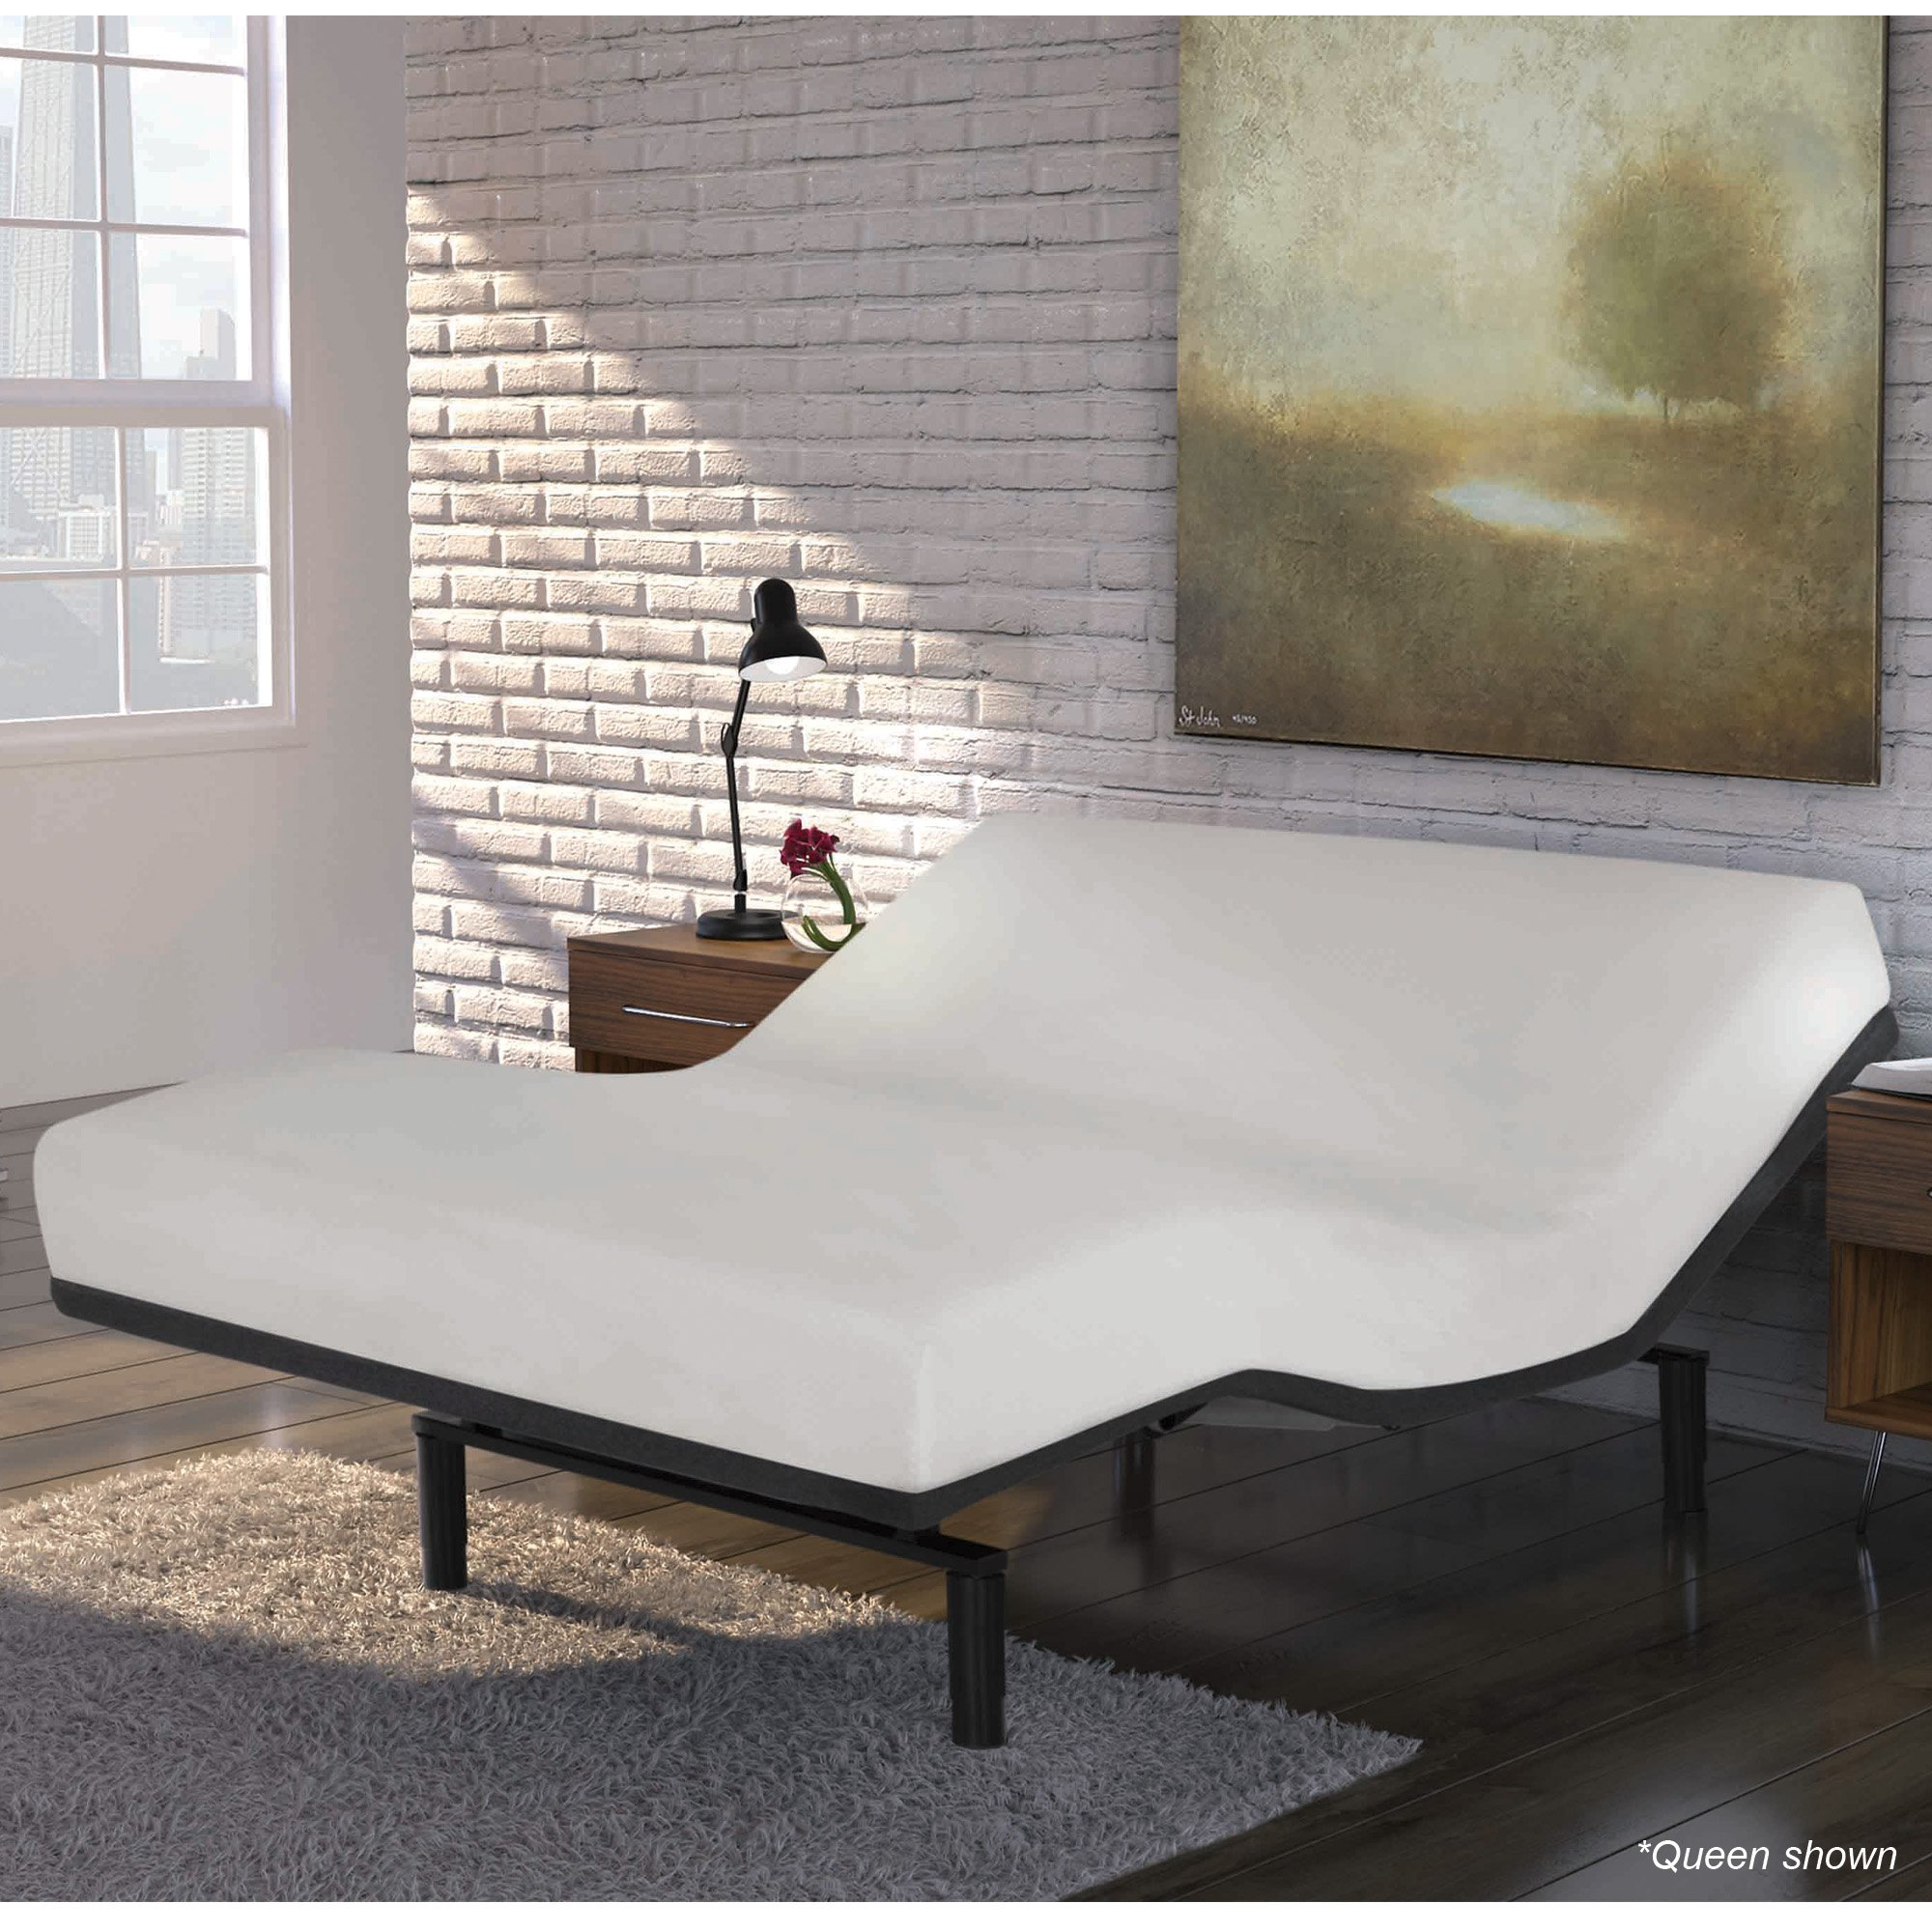 Fashion Bed Group Falcon 2.0+ Low-Profile Adjustable Base with Simultaneous Movement and Under-Bed Lighting, Queen, Charcoal Gray by Fashion Bed Group